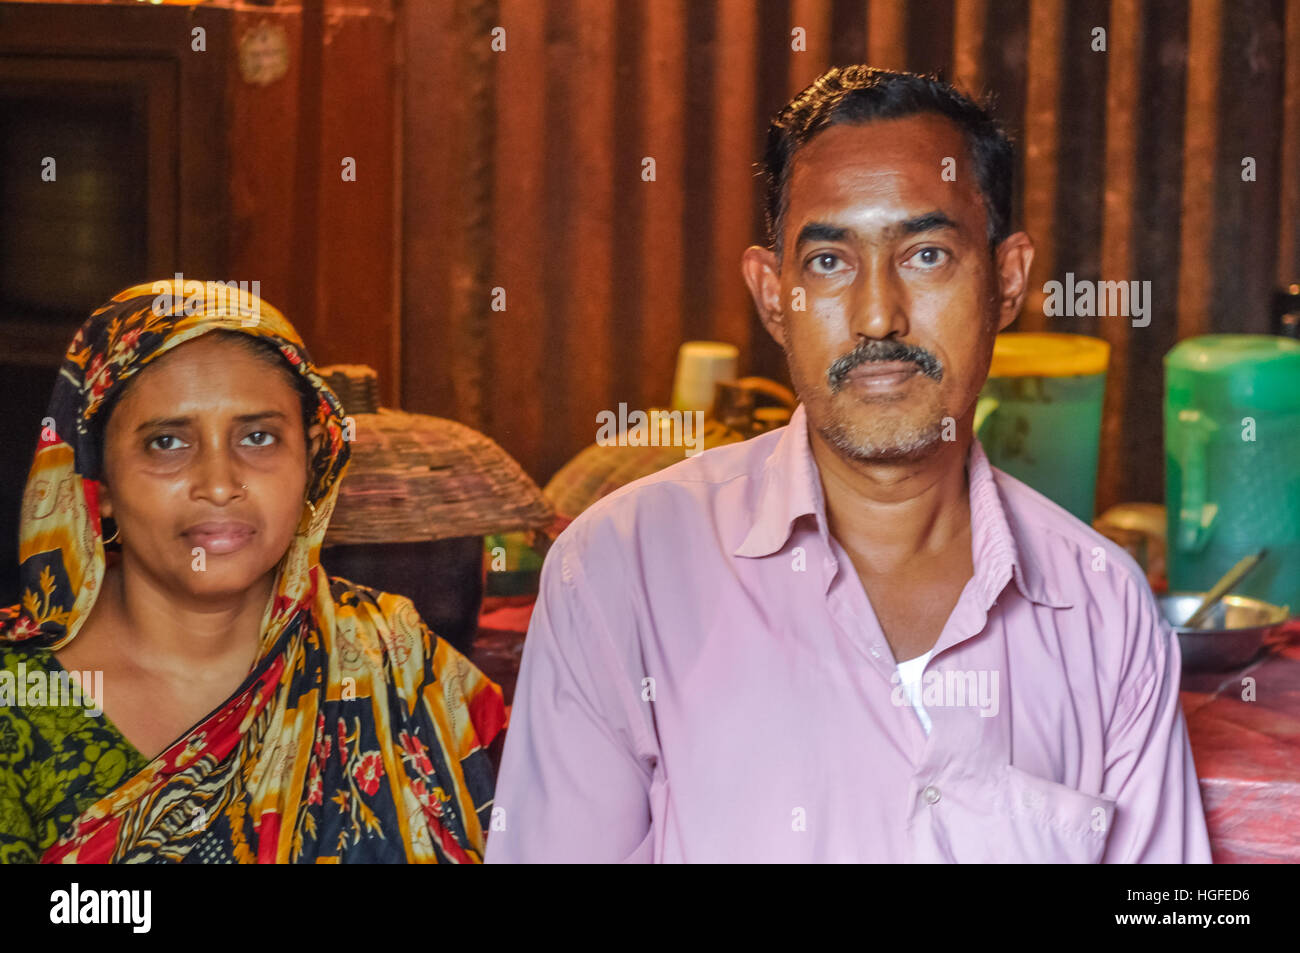 Morolgang, Bangladesh - circa July 2012: Black-haired man with moustache dressed in pink shirt with his wife with - Stock Image